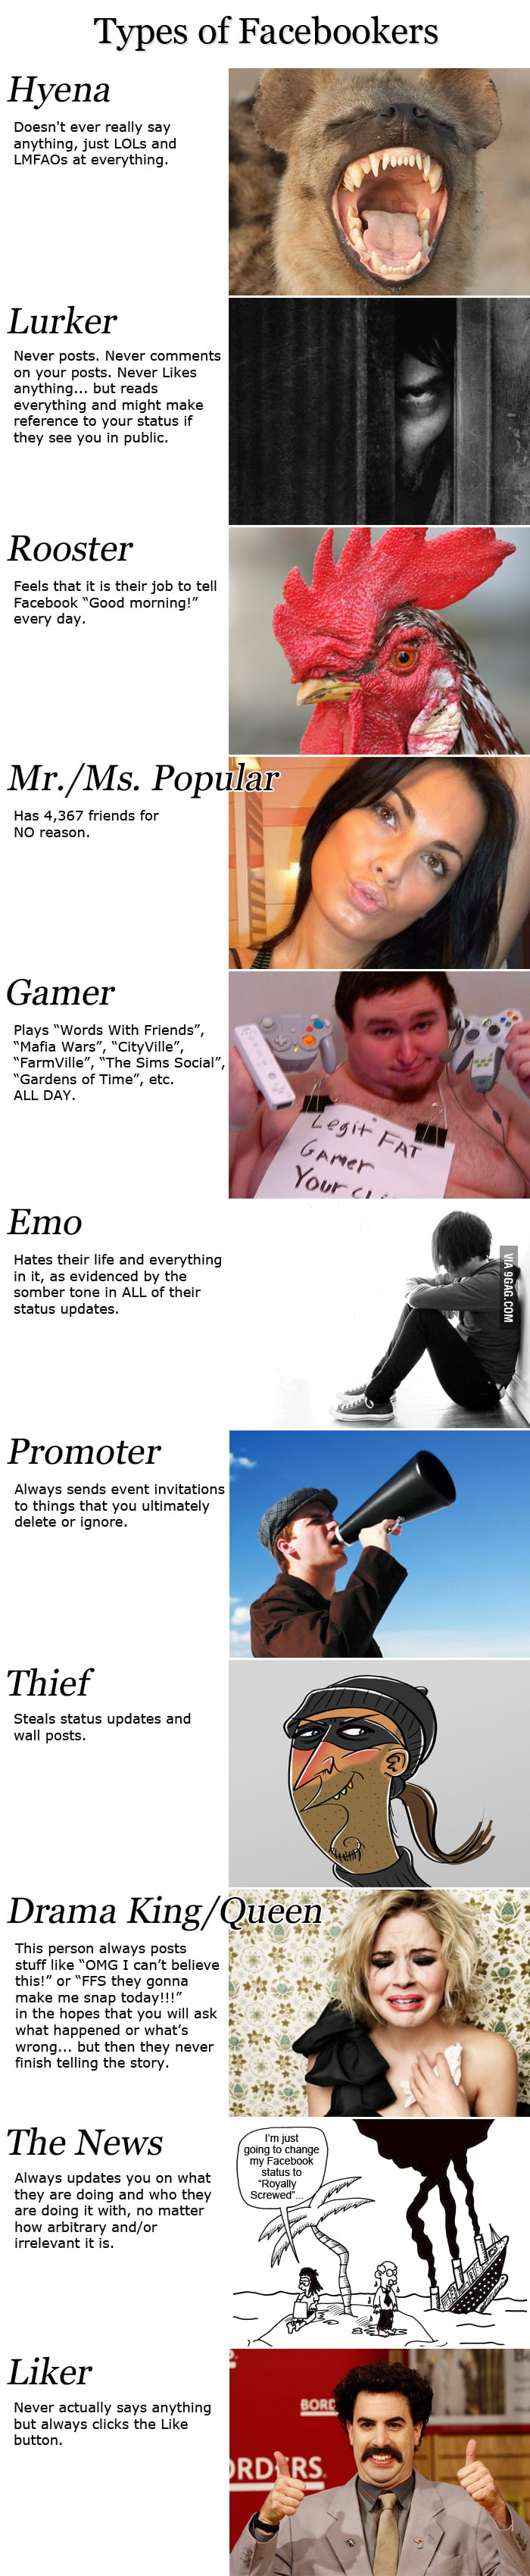 Types of Facebookers